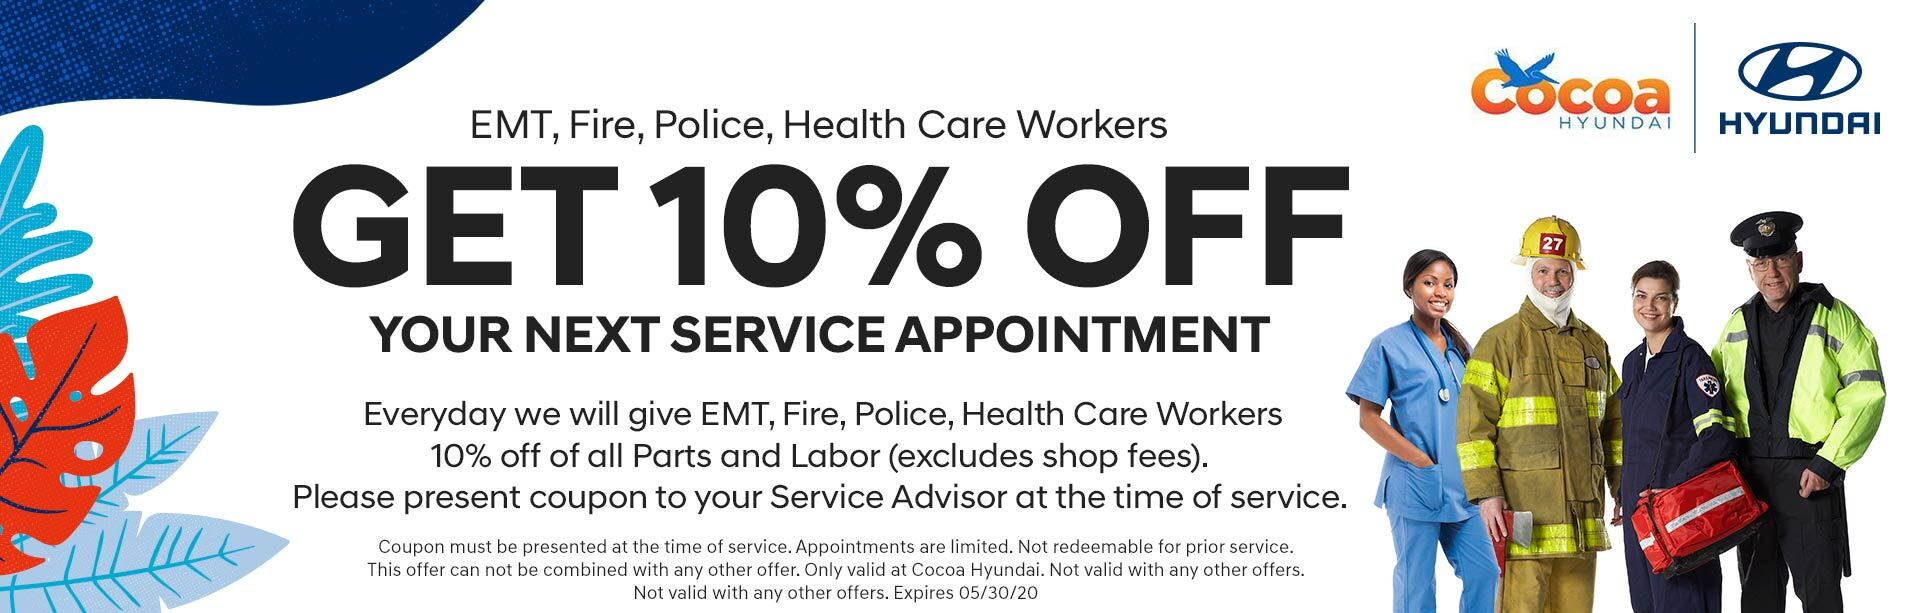 Health workers get 10% off your next service appointment